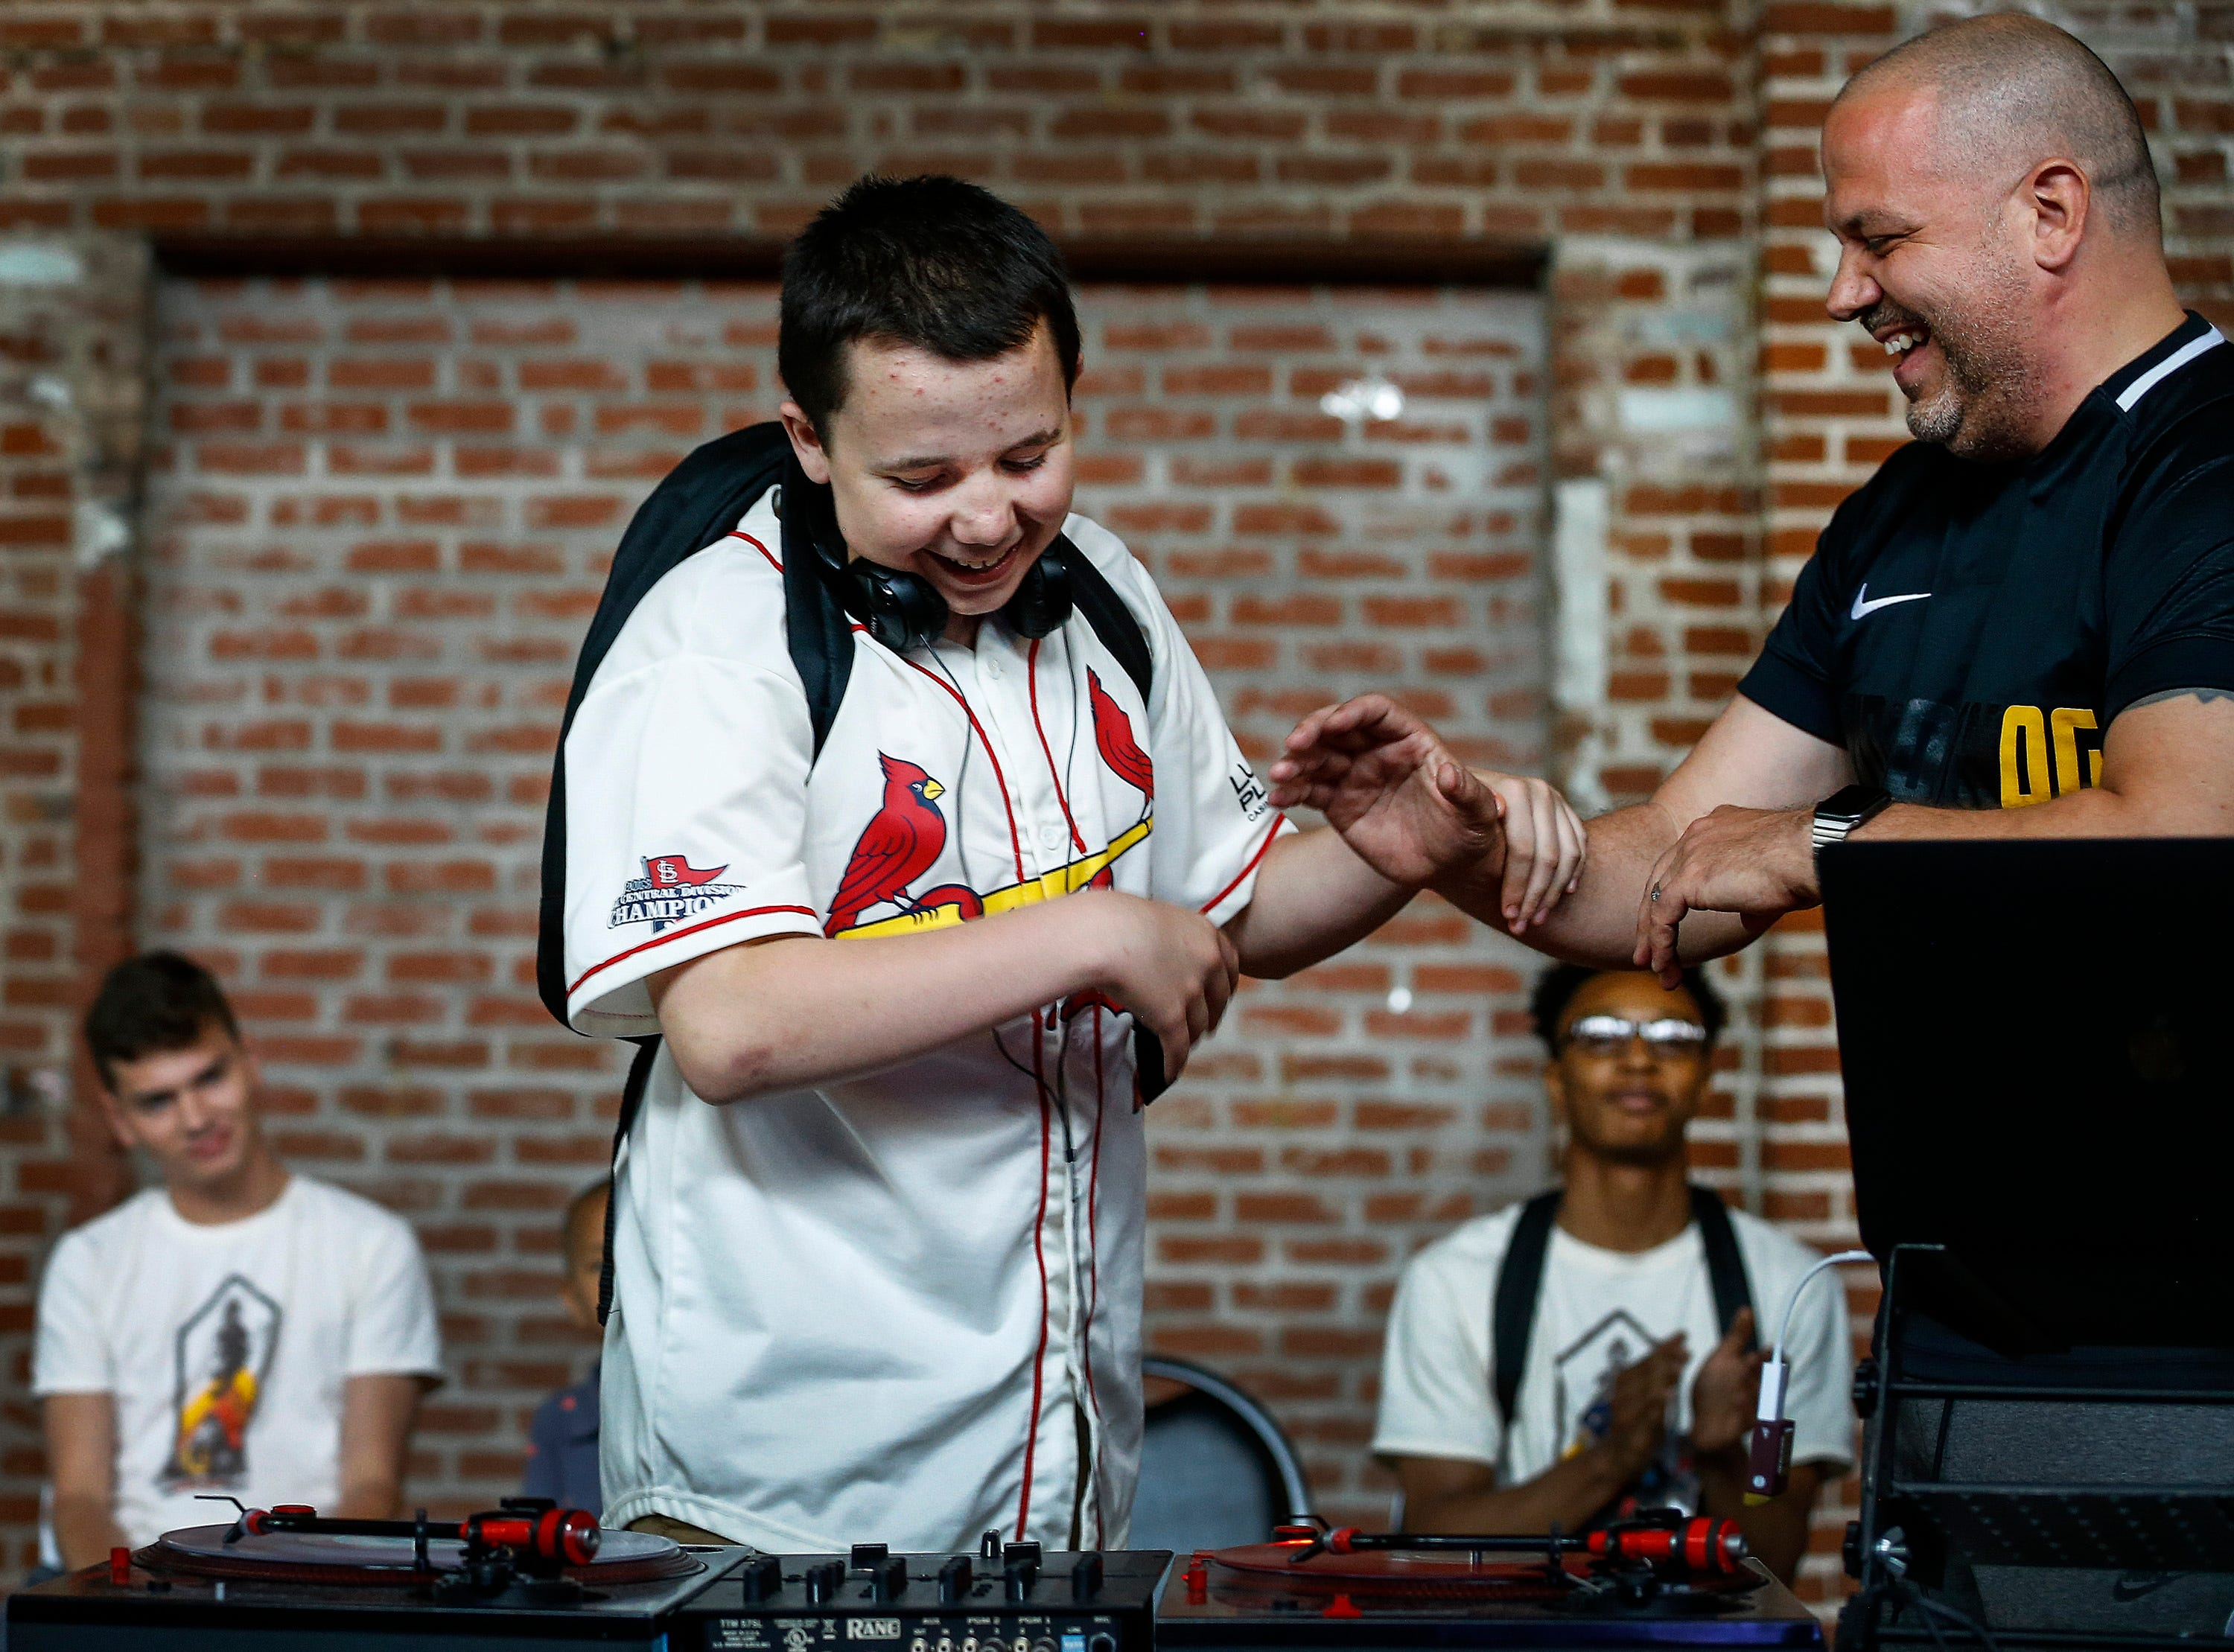 Inaugural Camp DJ Memphis builds confidence, new skills | The Commercial Appeal